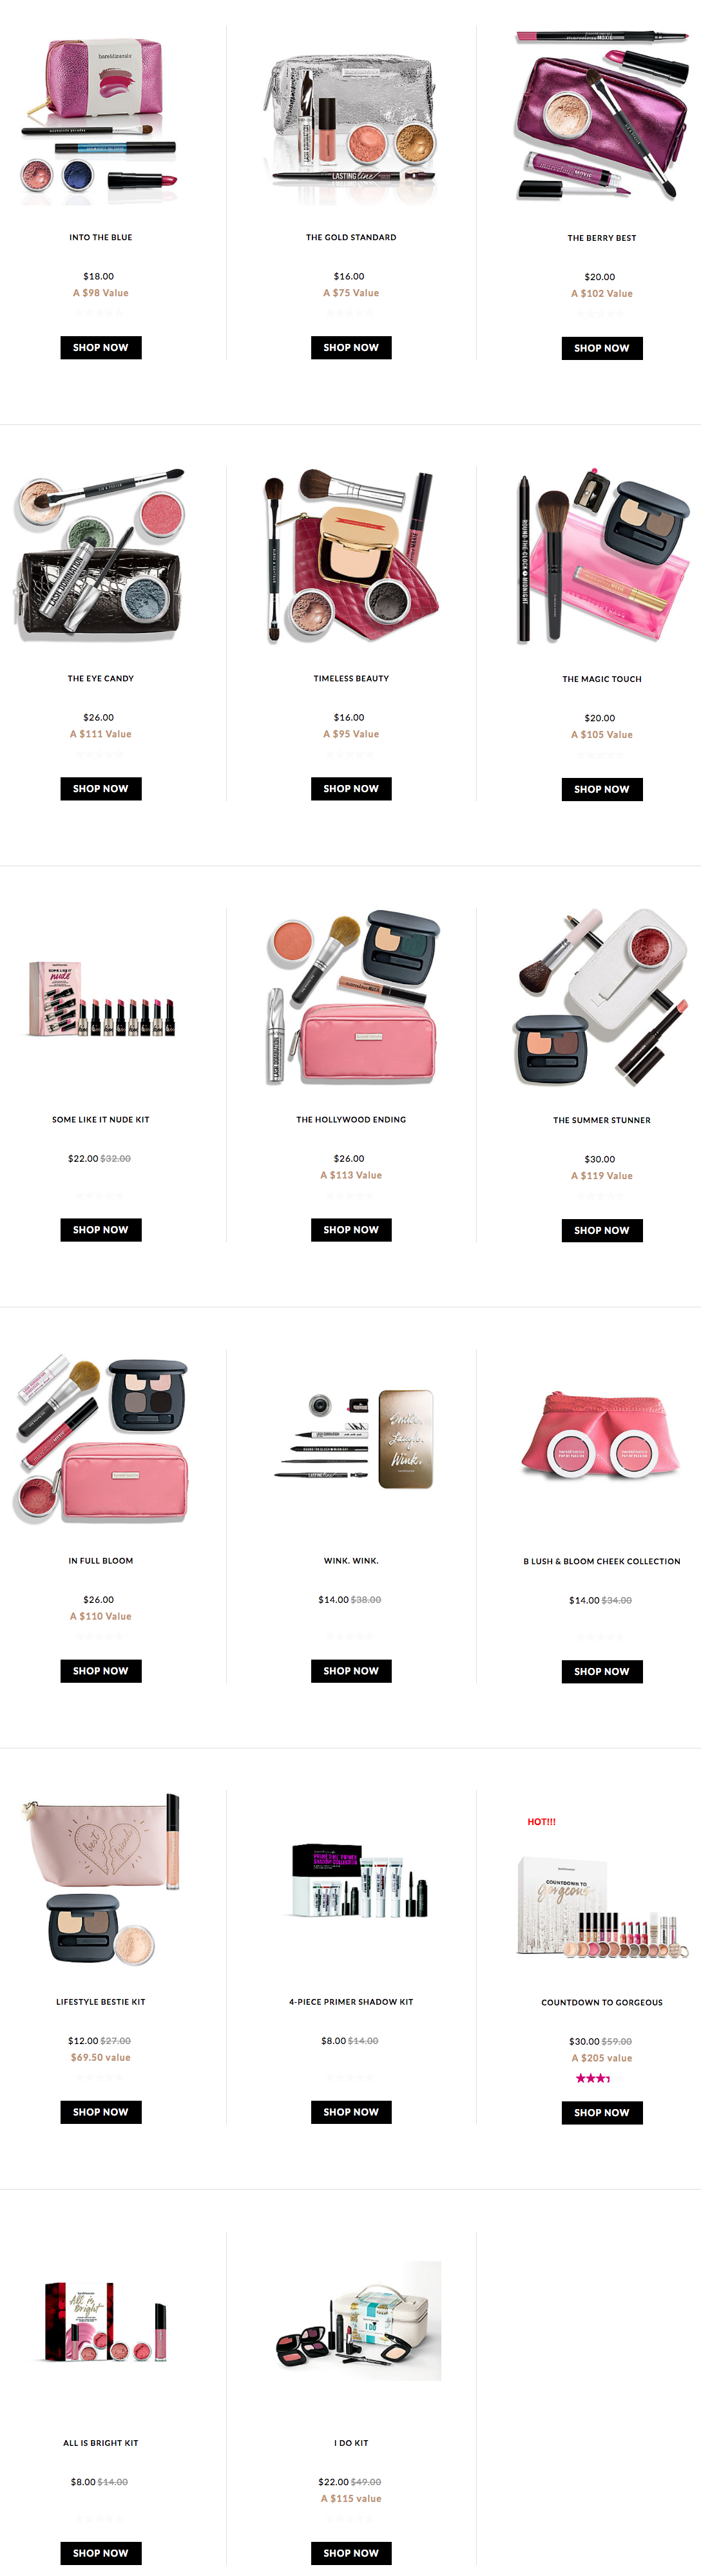 bareMinerals: DEEP discount flash sale + free 5 pcs gift w/$65 purchase - today only - Gift With Purchase